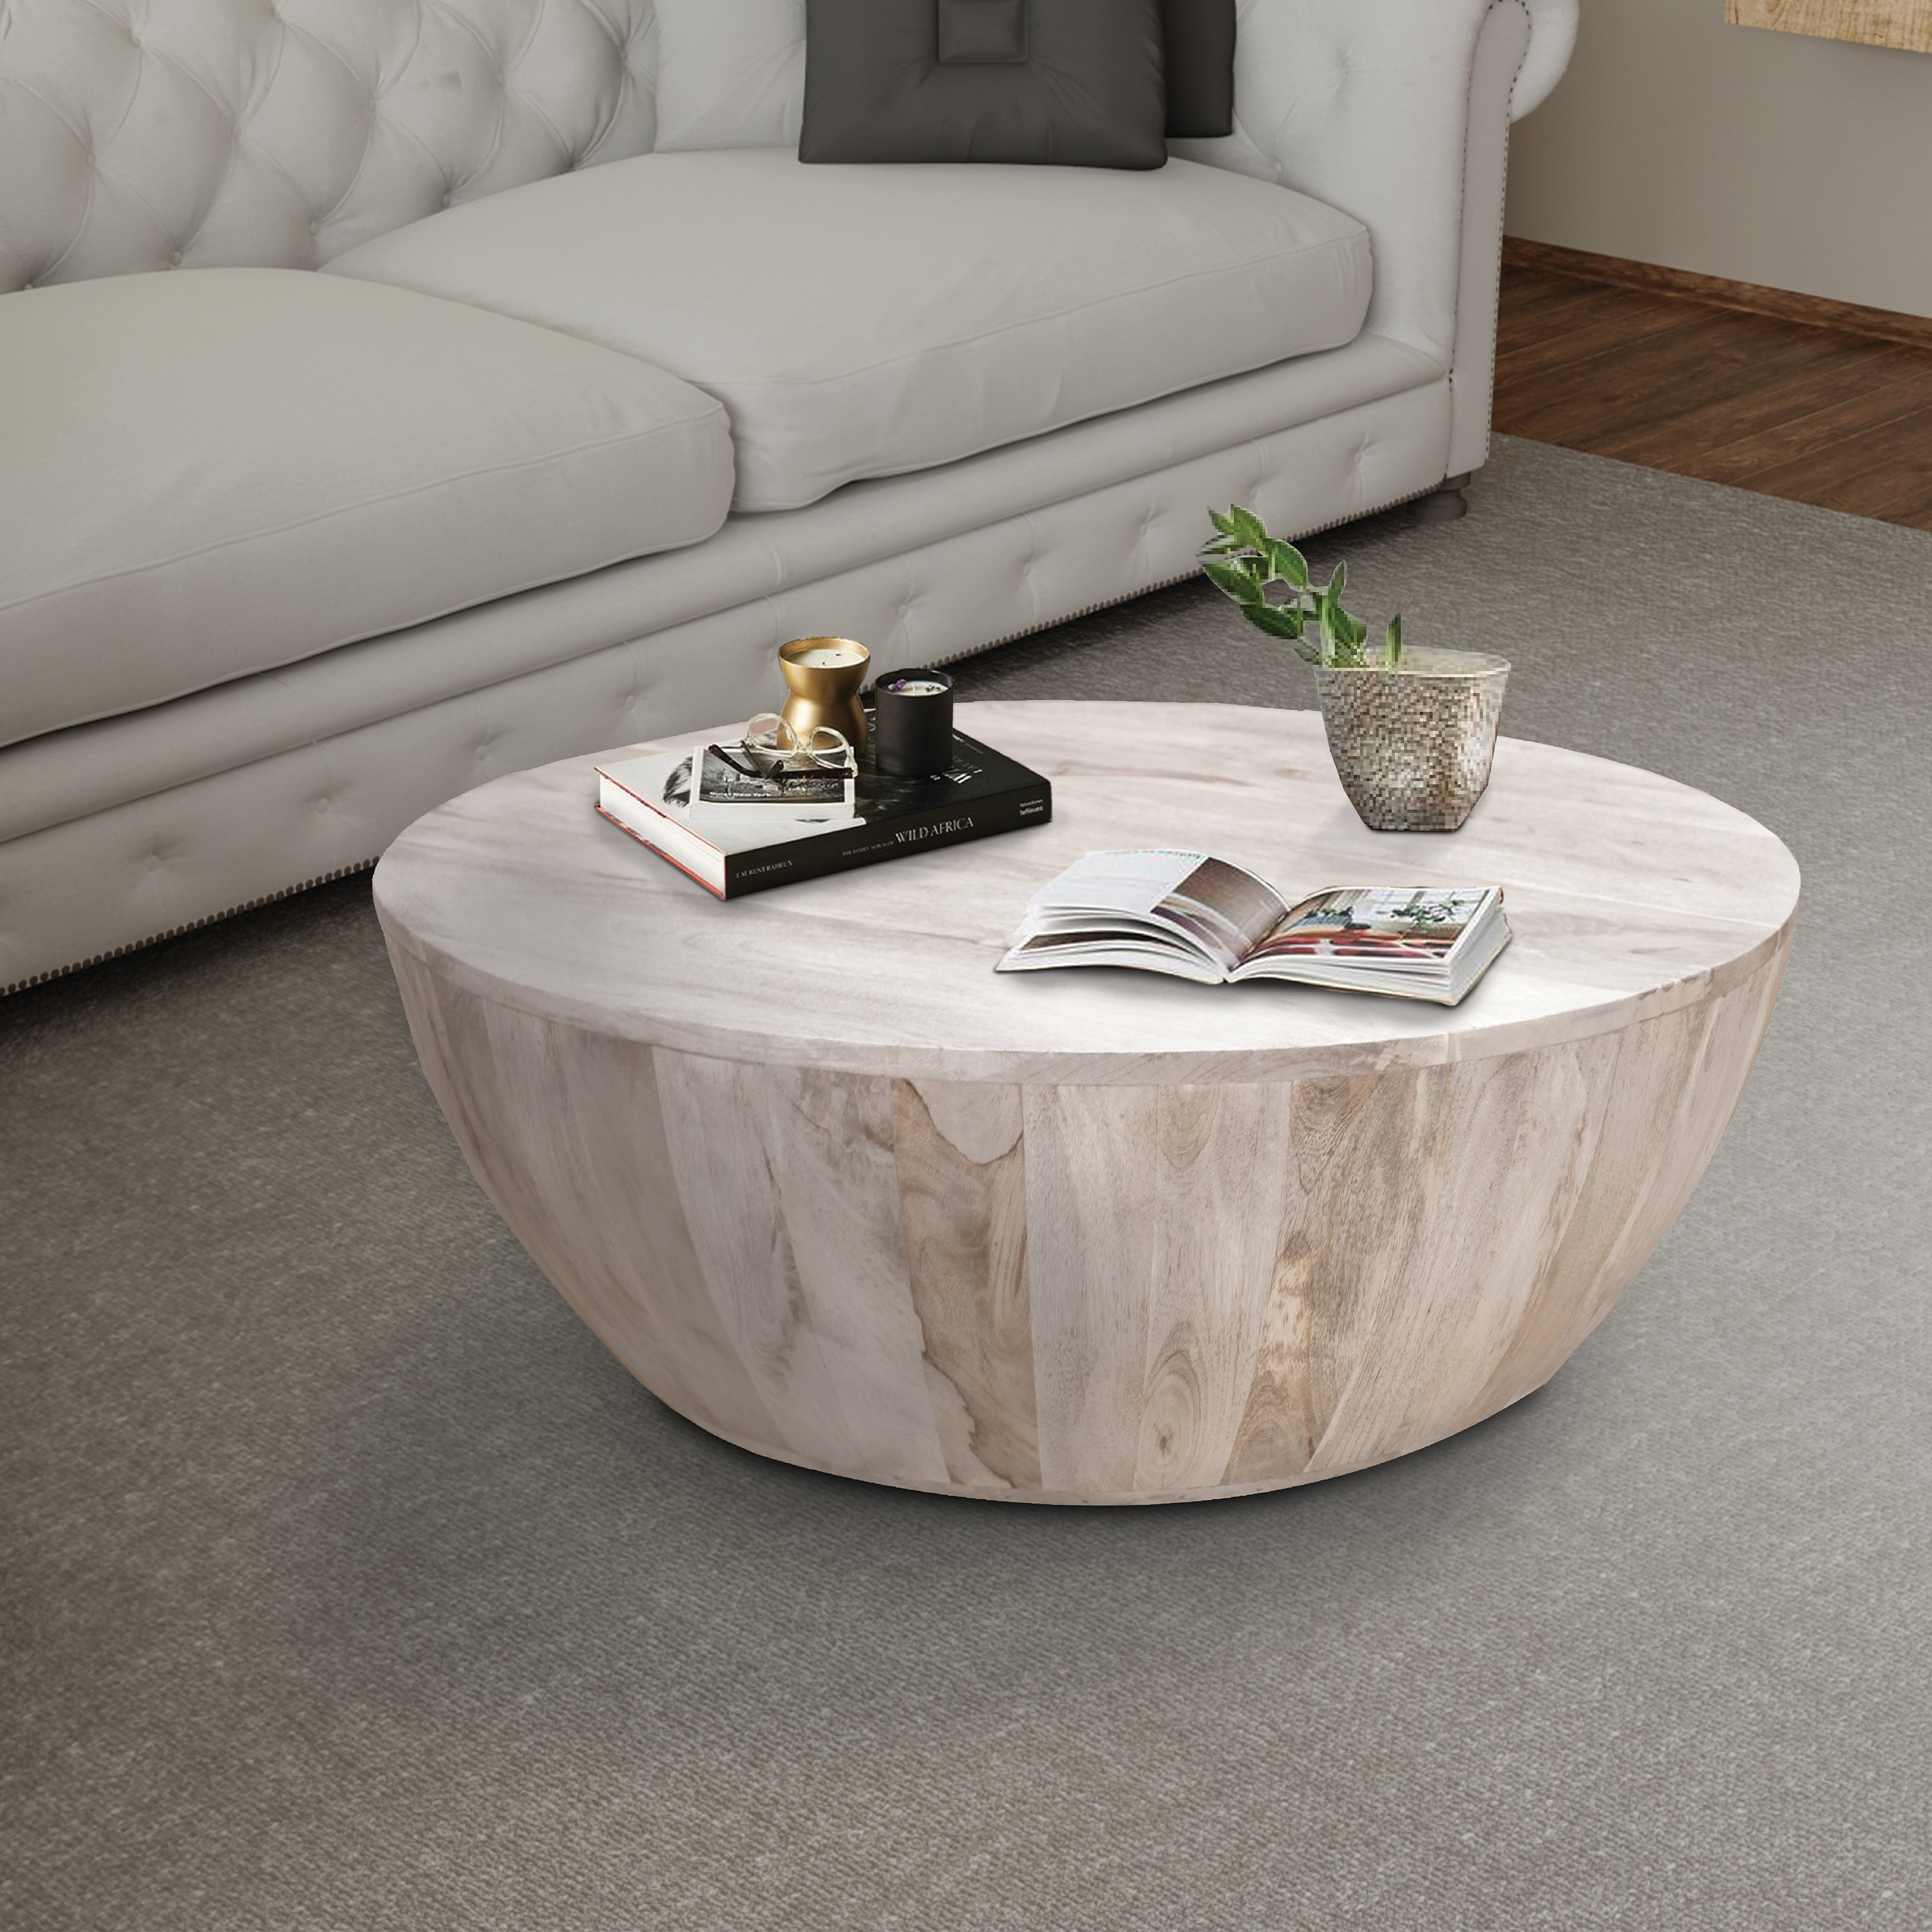 This Round Shape Coffee Table Is Made From Mango Wood And Features A Smooth Wide Top That Can Mango Wood Coffee Table Round Wood Coffee Table Coffee Table Wood [ jpg ]